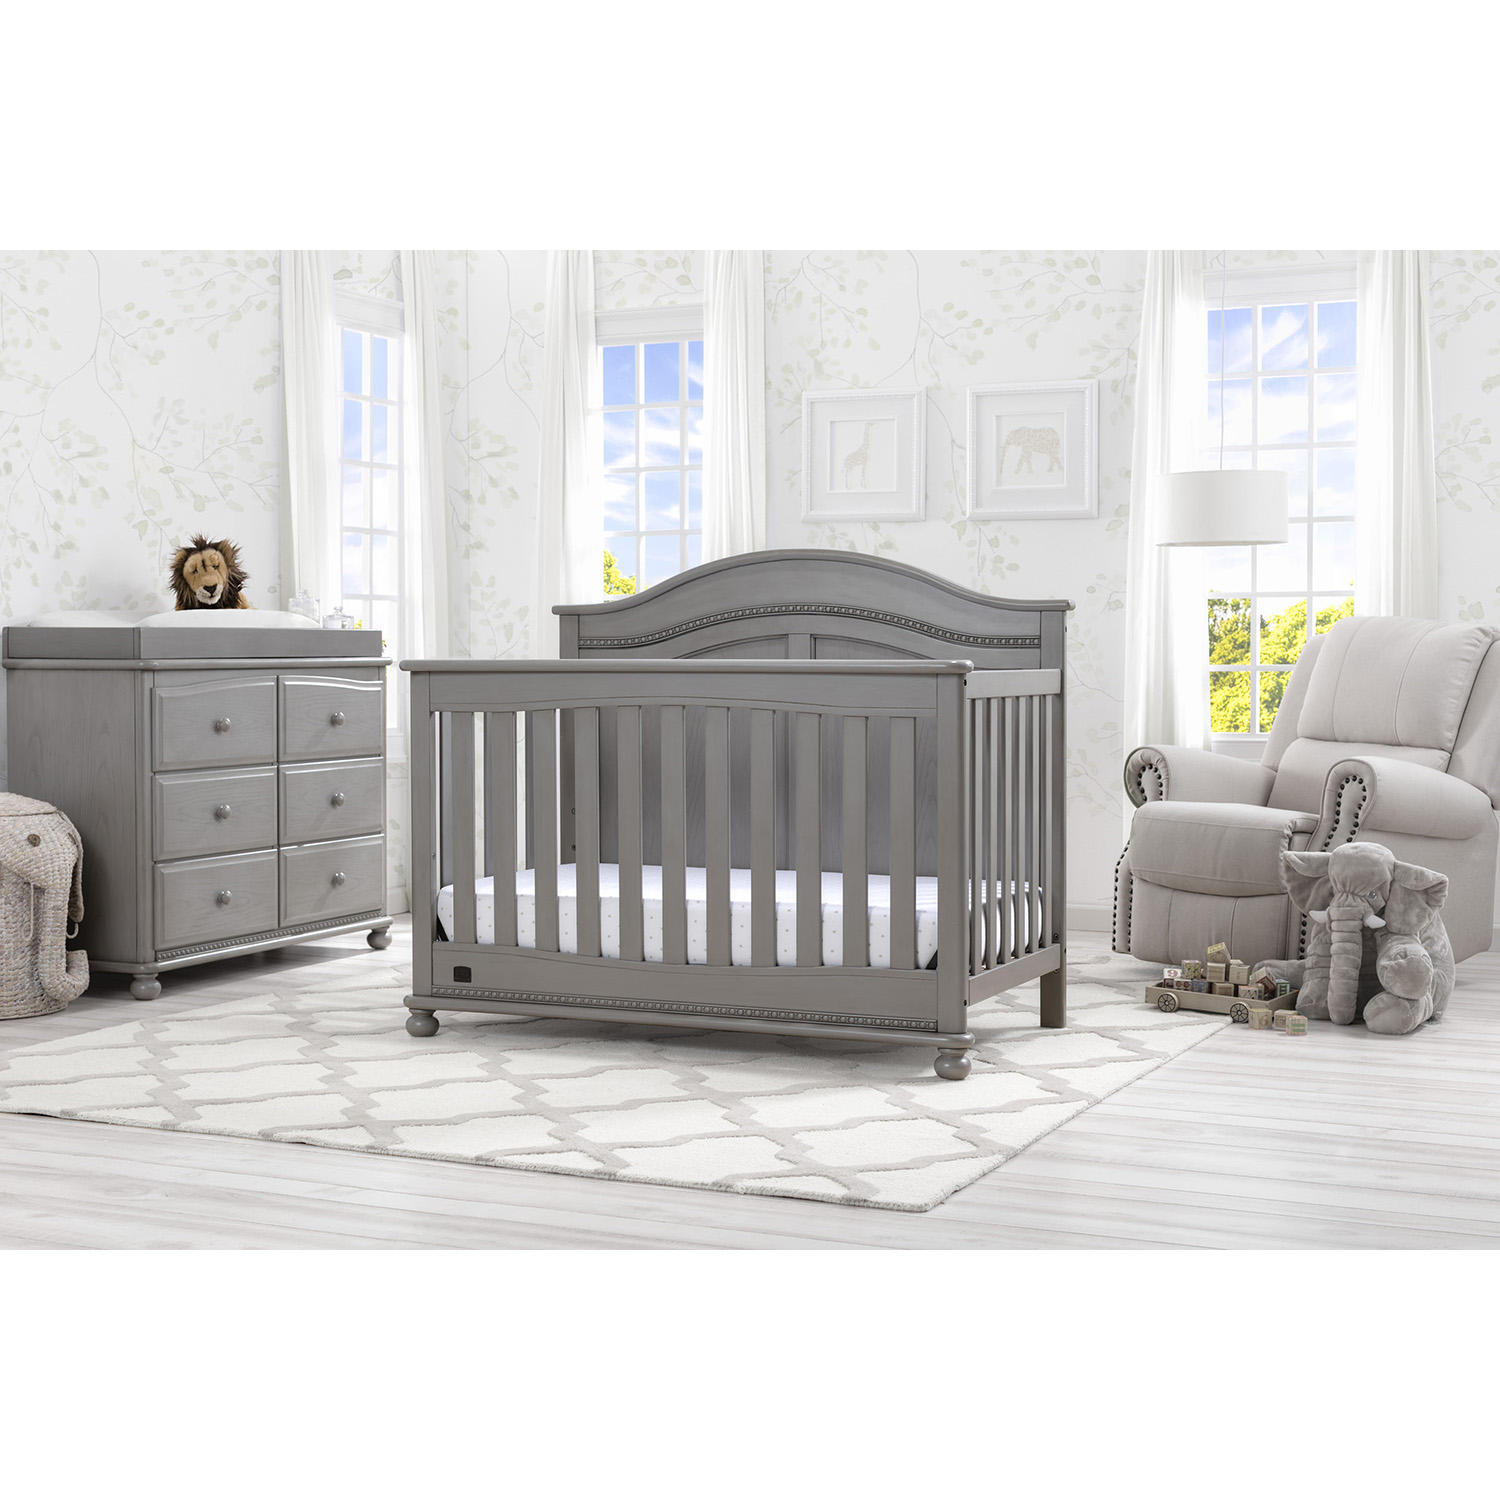 Simmons Kids Bedford 5-Piece Baby Furniture Set